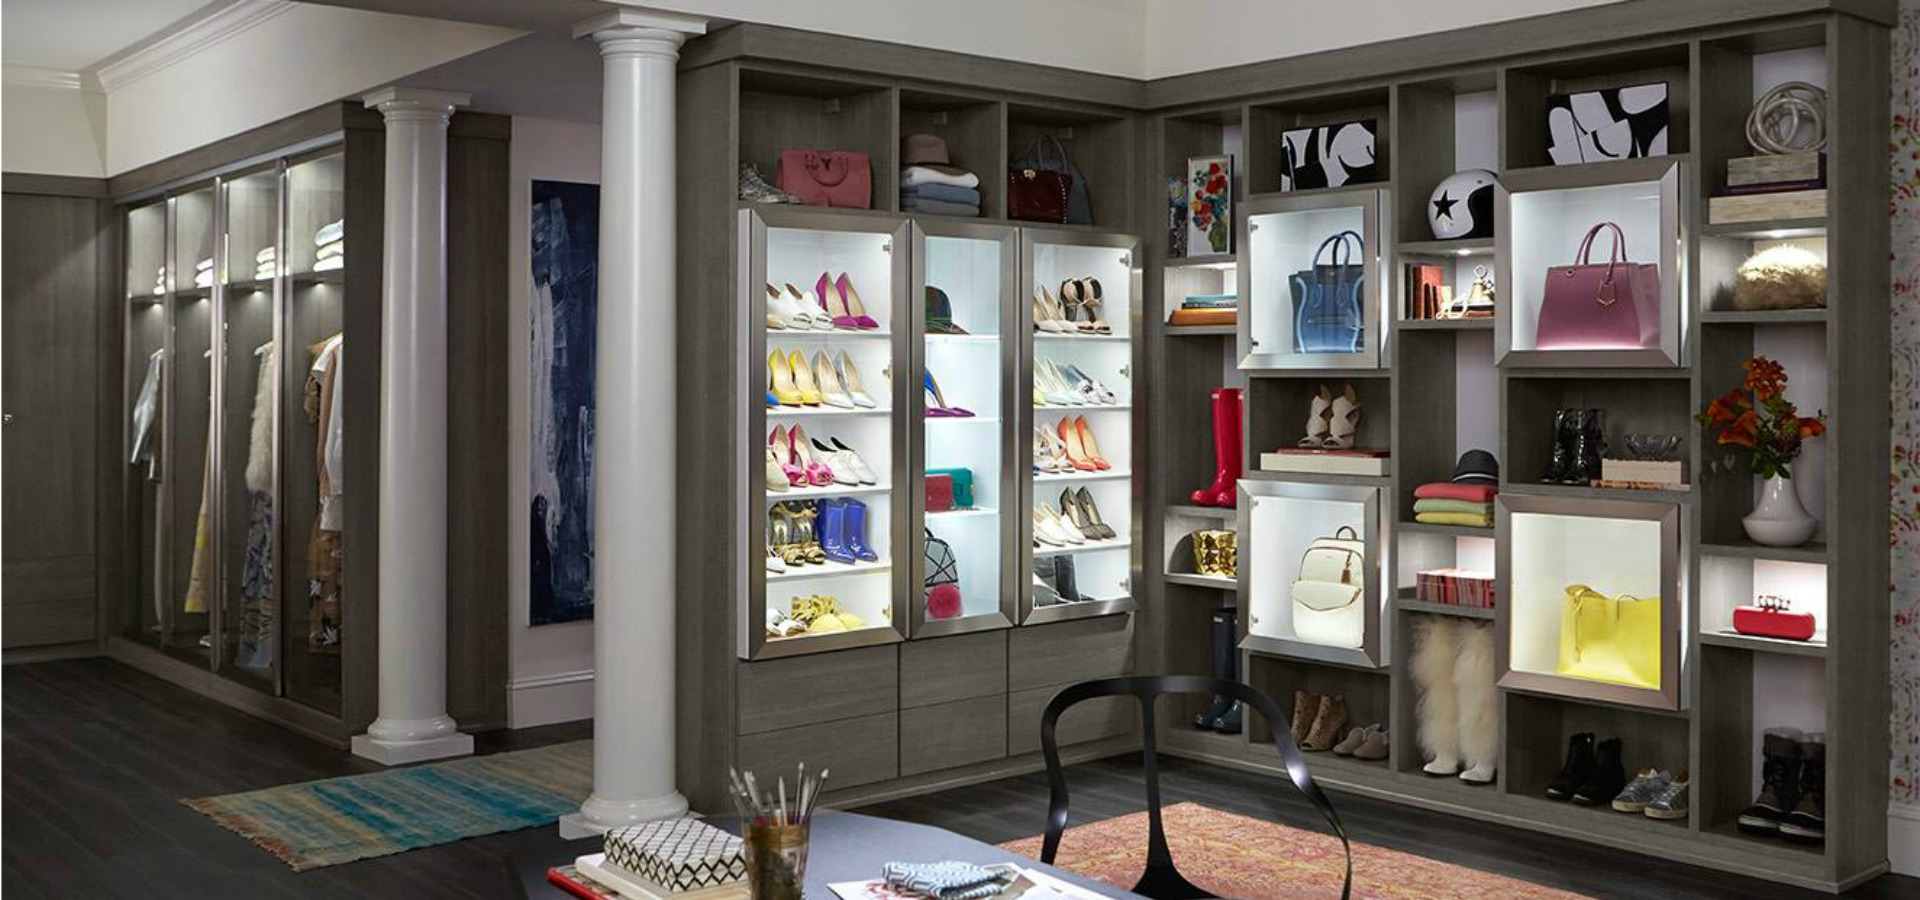 Visit The California Closets South Lake Union Showroom To Experience The  One Of A Kind Custom Closets And Storage Spaces Created By The South Lake  Union ...